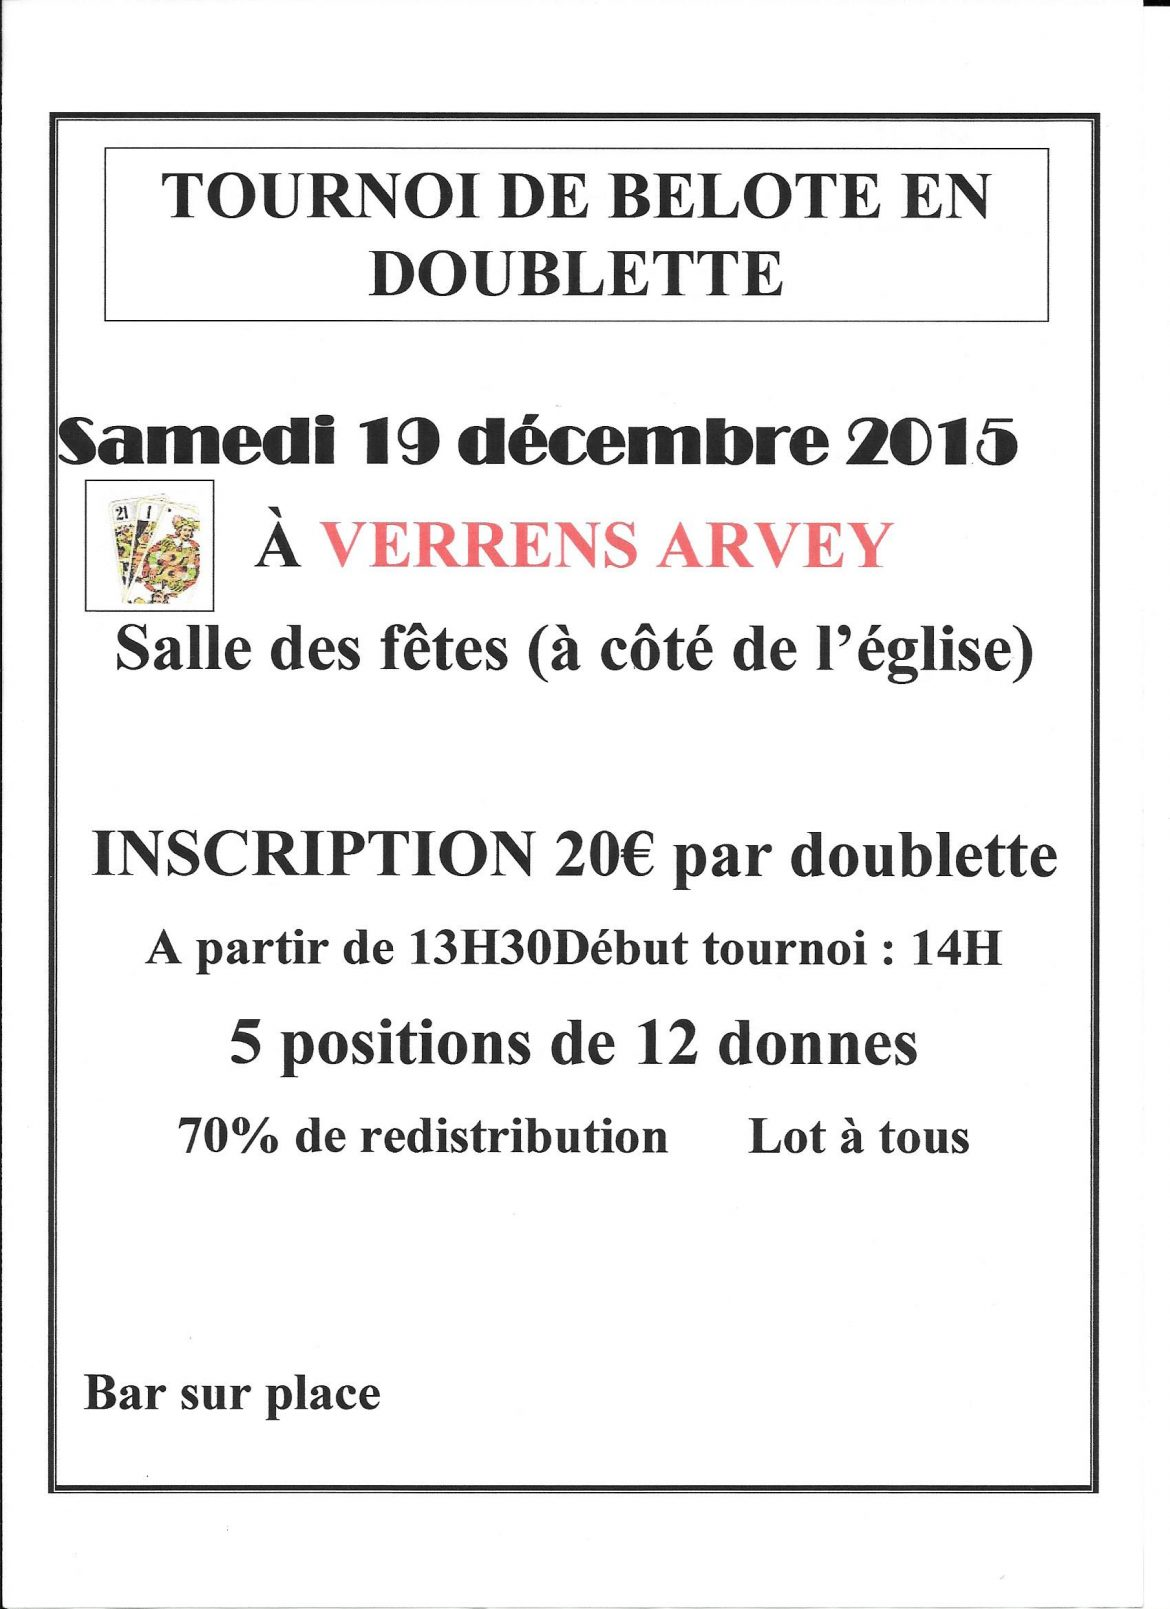 Tournoi de belote le 19 12 2015 à Verrens Arvey 73460